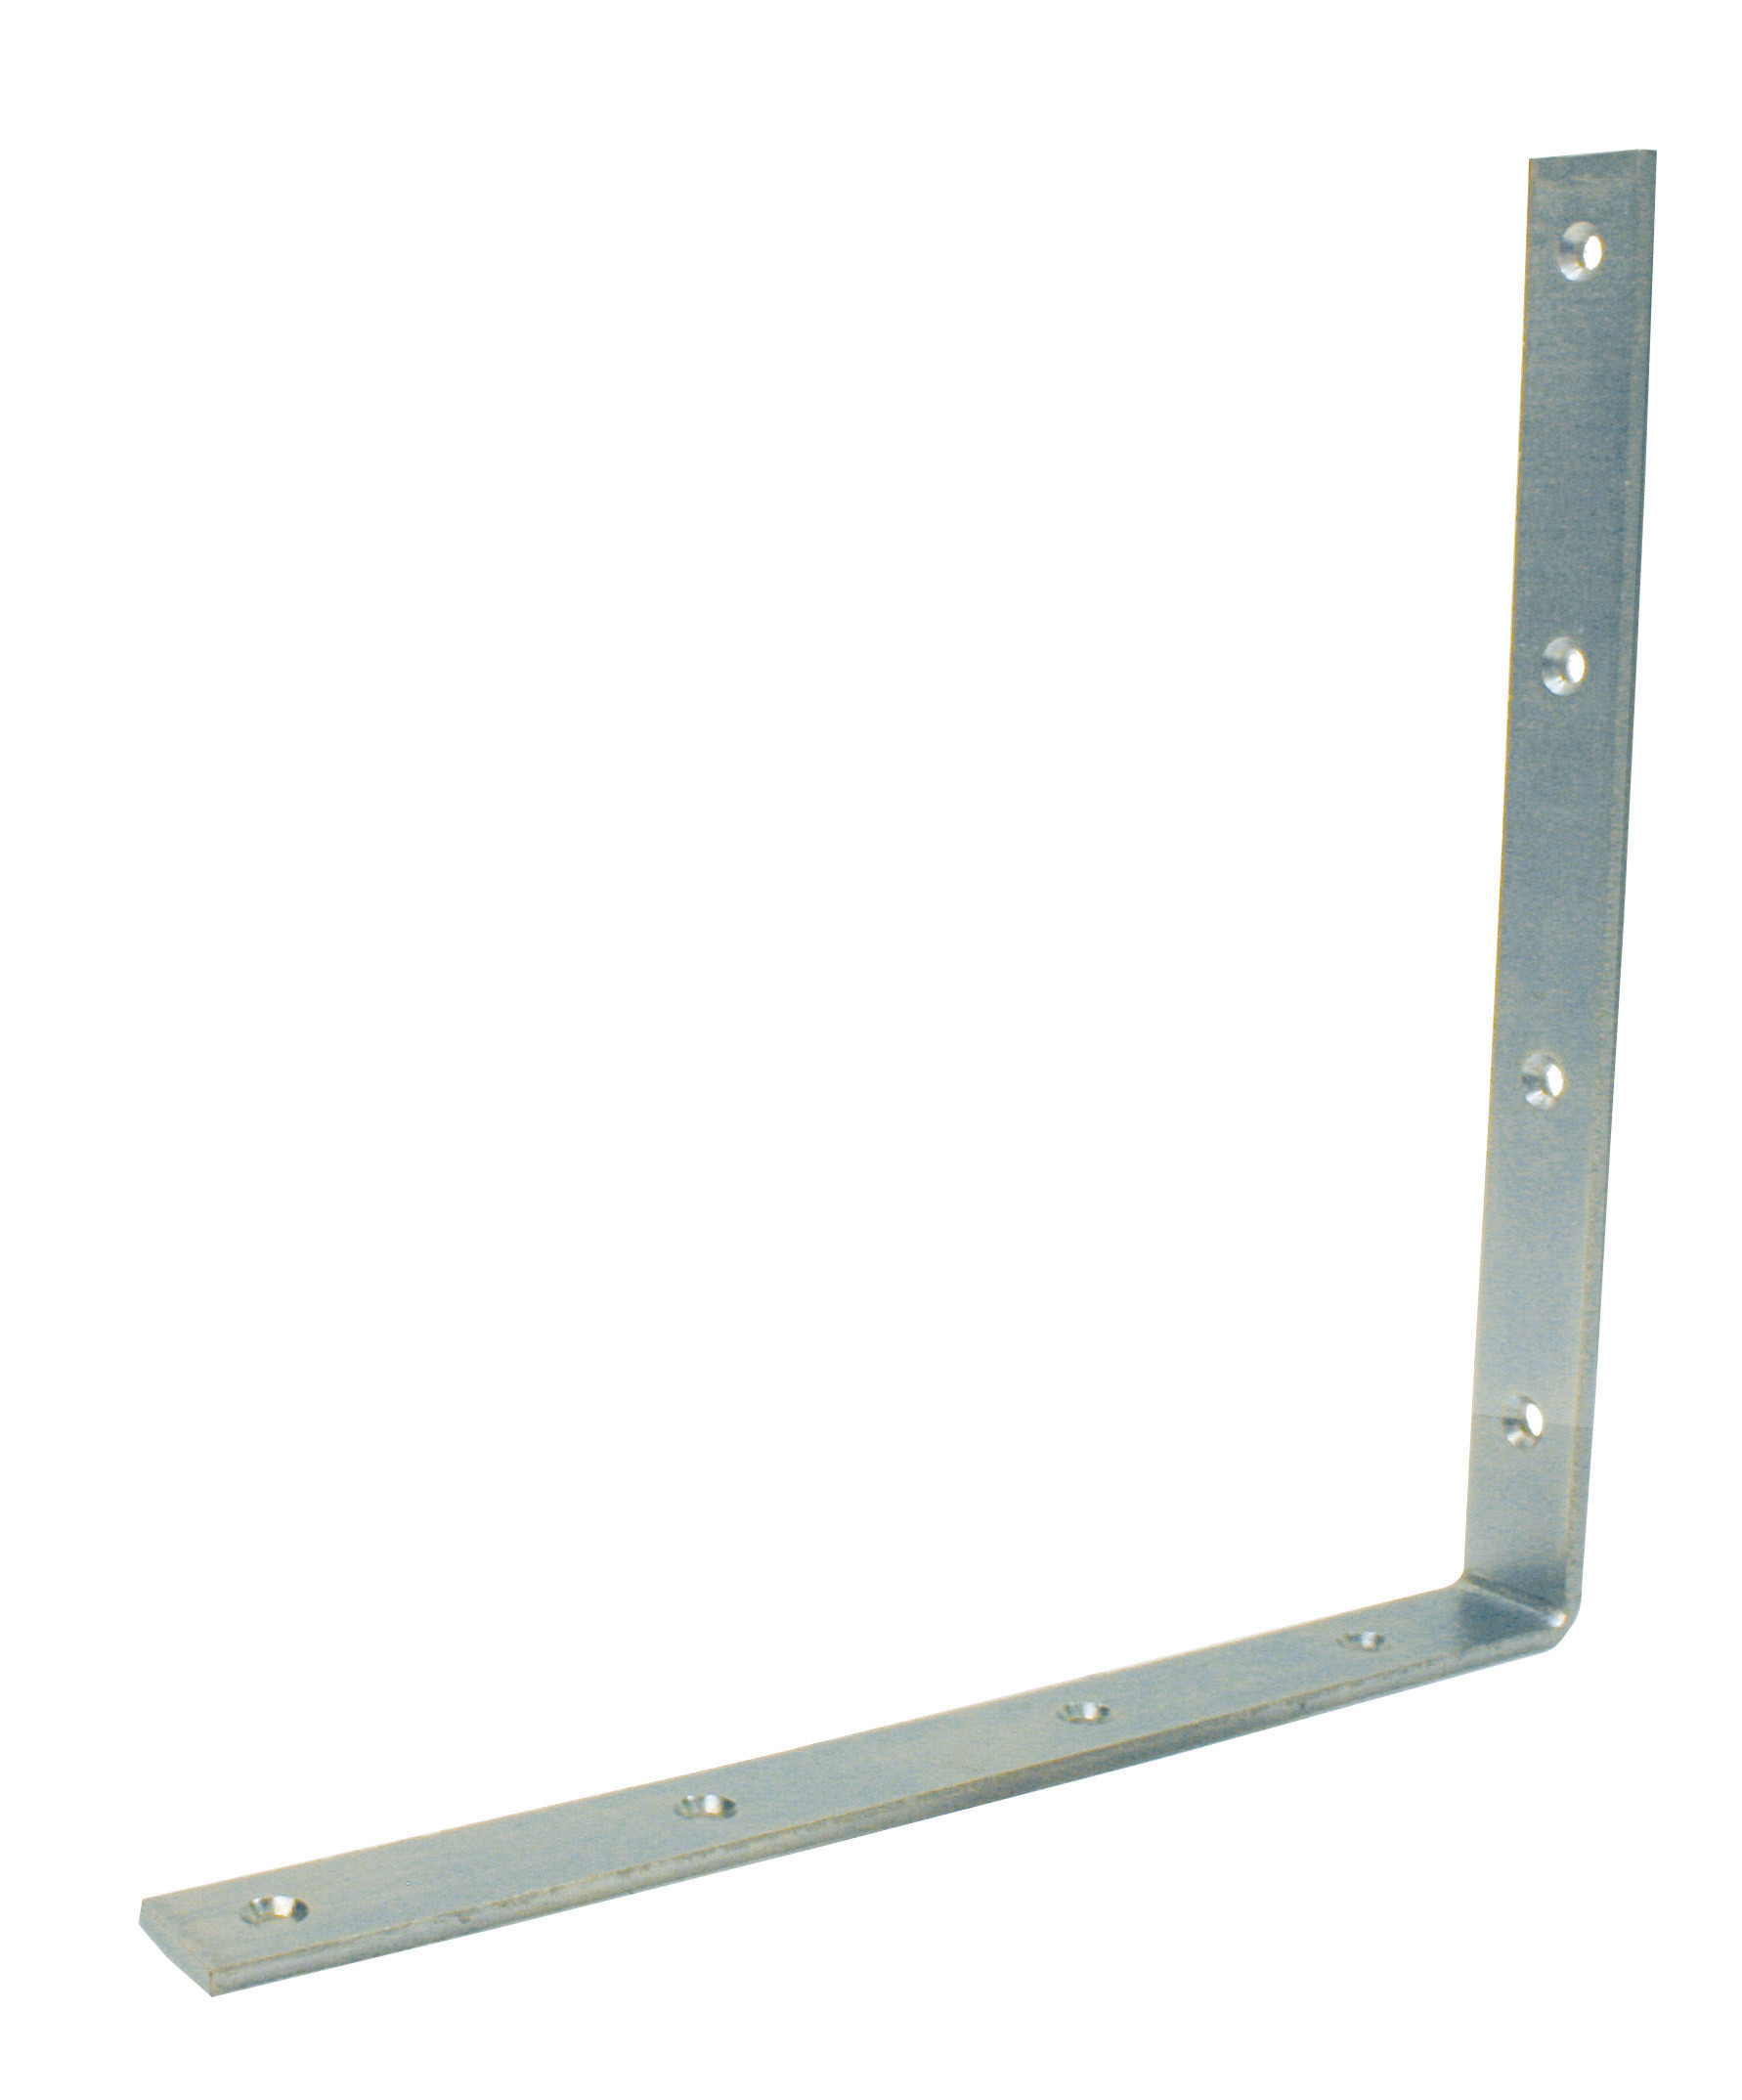 Angle bracket heavy duty 300x300 30x6 EV